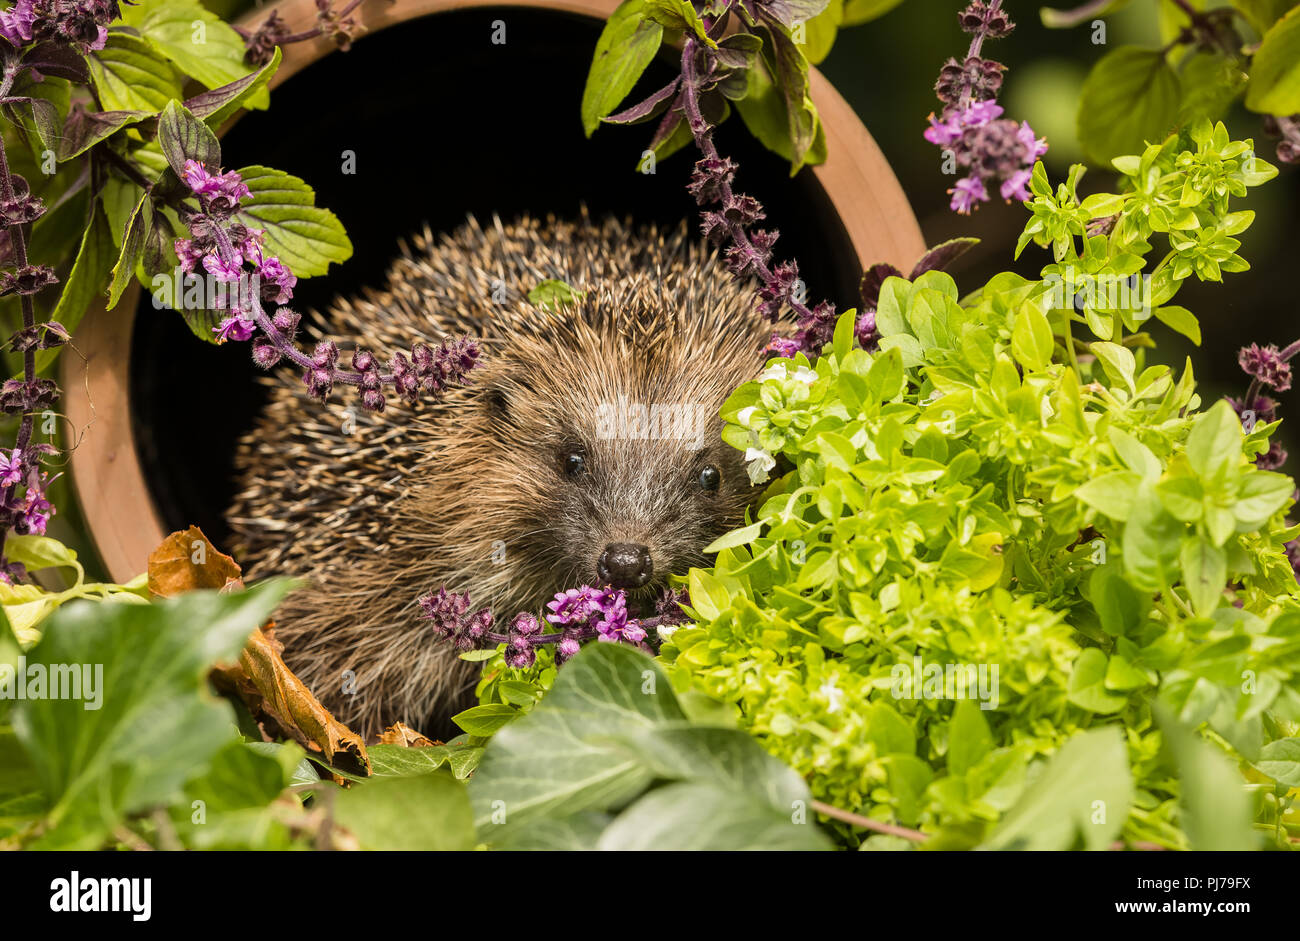 Hedgehog, native, wild, European hedgehog in colourful herb garden.  Facing forward and sat inside a clay drainage pipe surrounded by wild thyme. - Stock Image